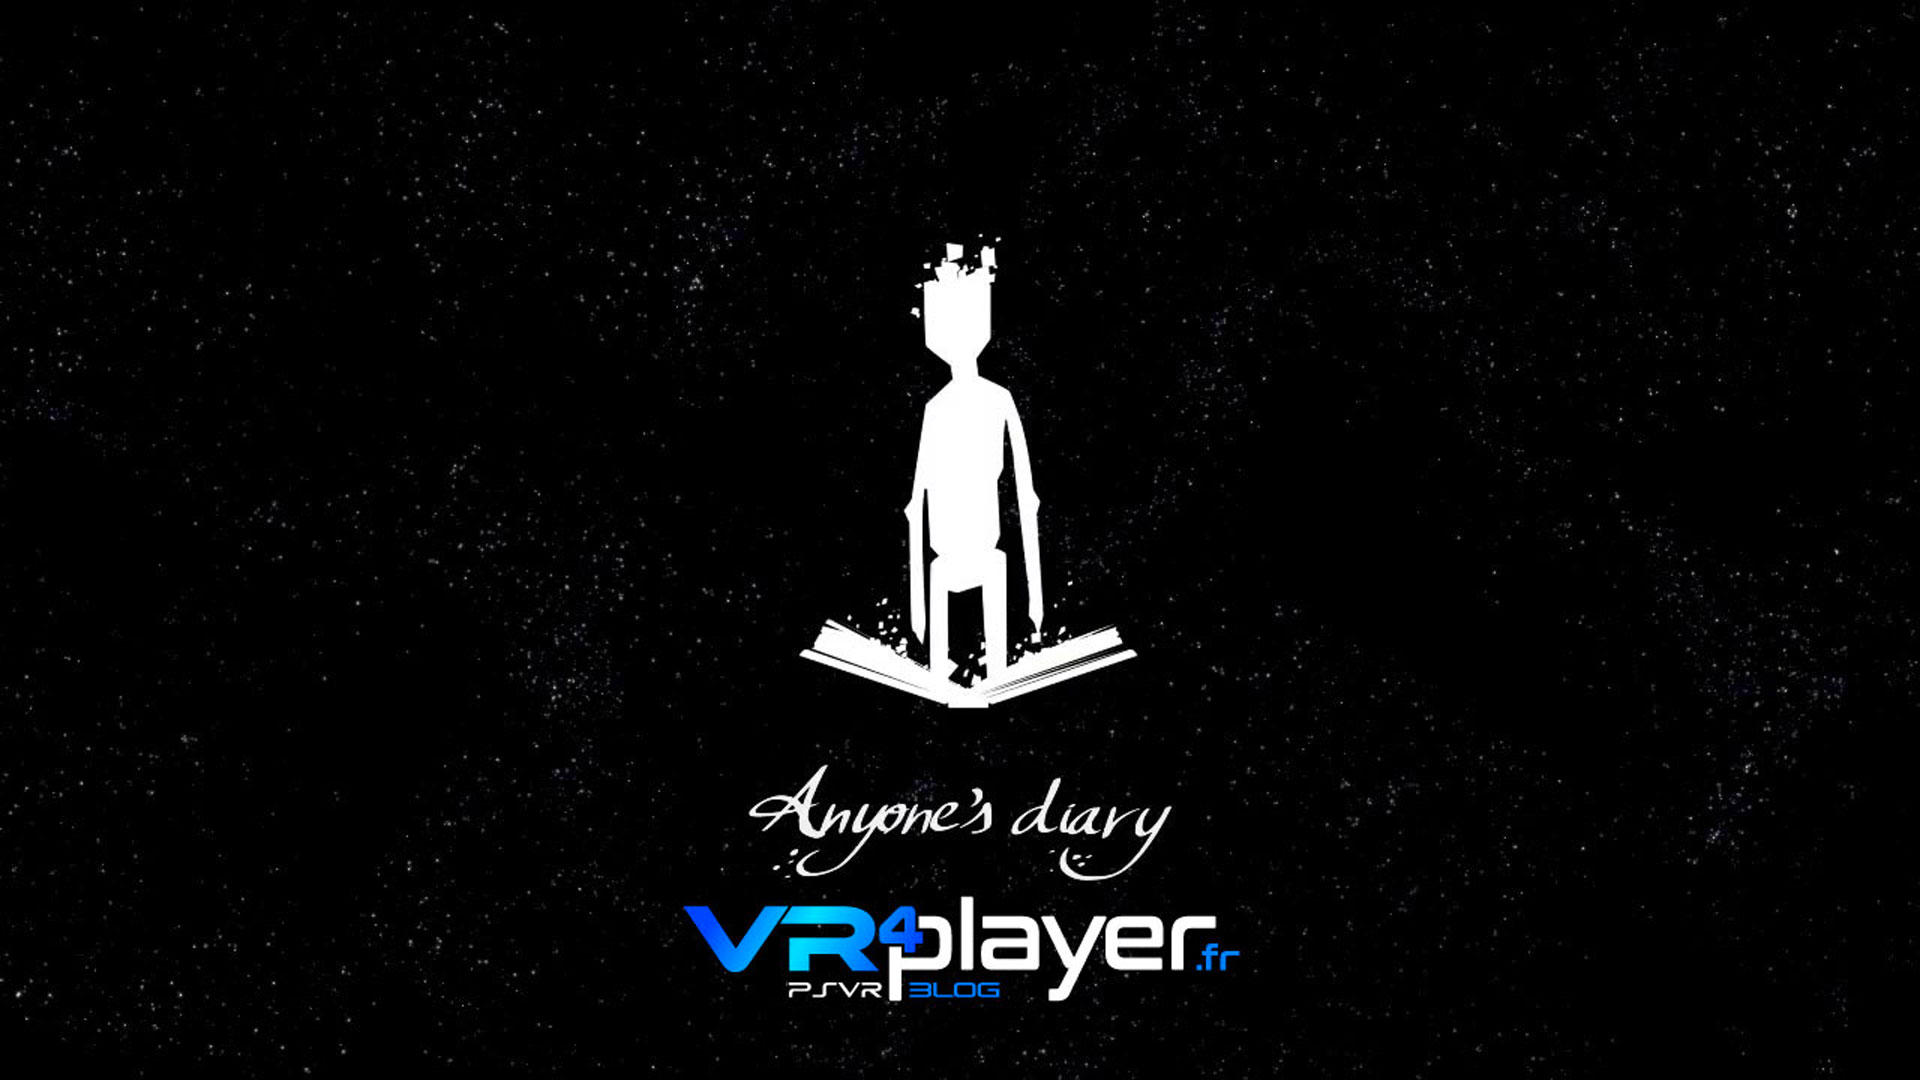 Anyone's Diary sur PlayStation VR, PSVR, VR4player.fr